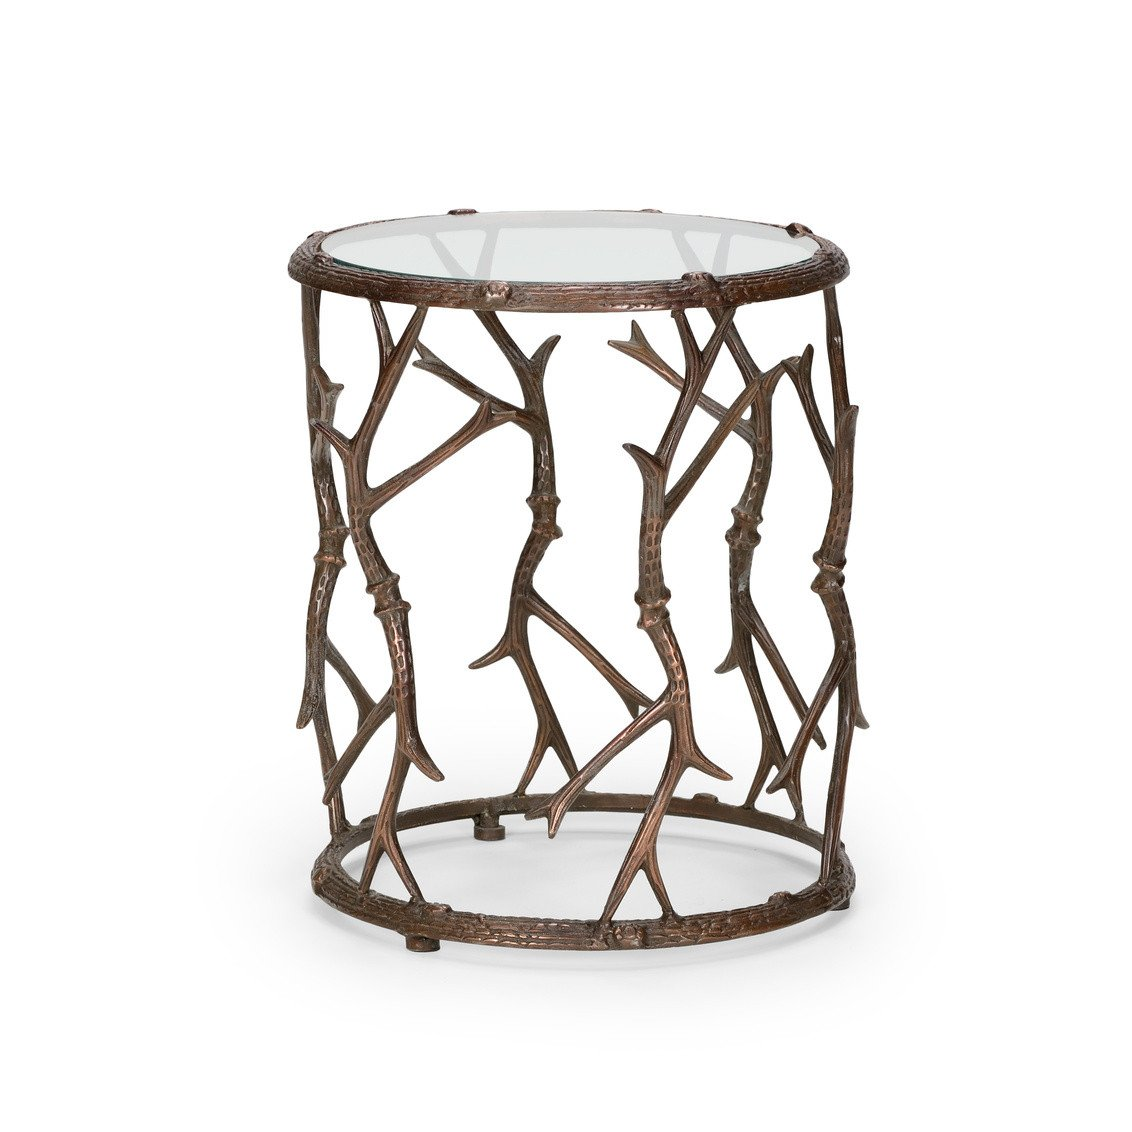 modern bronze finish accent table maritime light fixtures threshold furniture foyer pieces pulaski corner curio cabinet round side cover dining area pub garden coffee legs grey